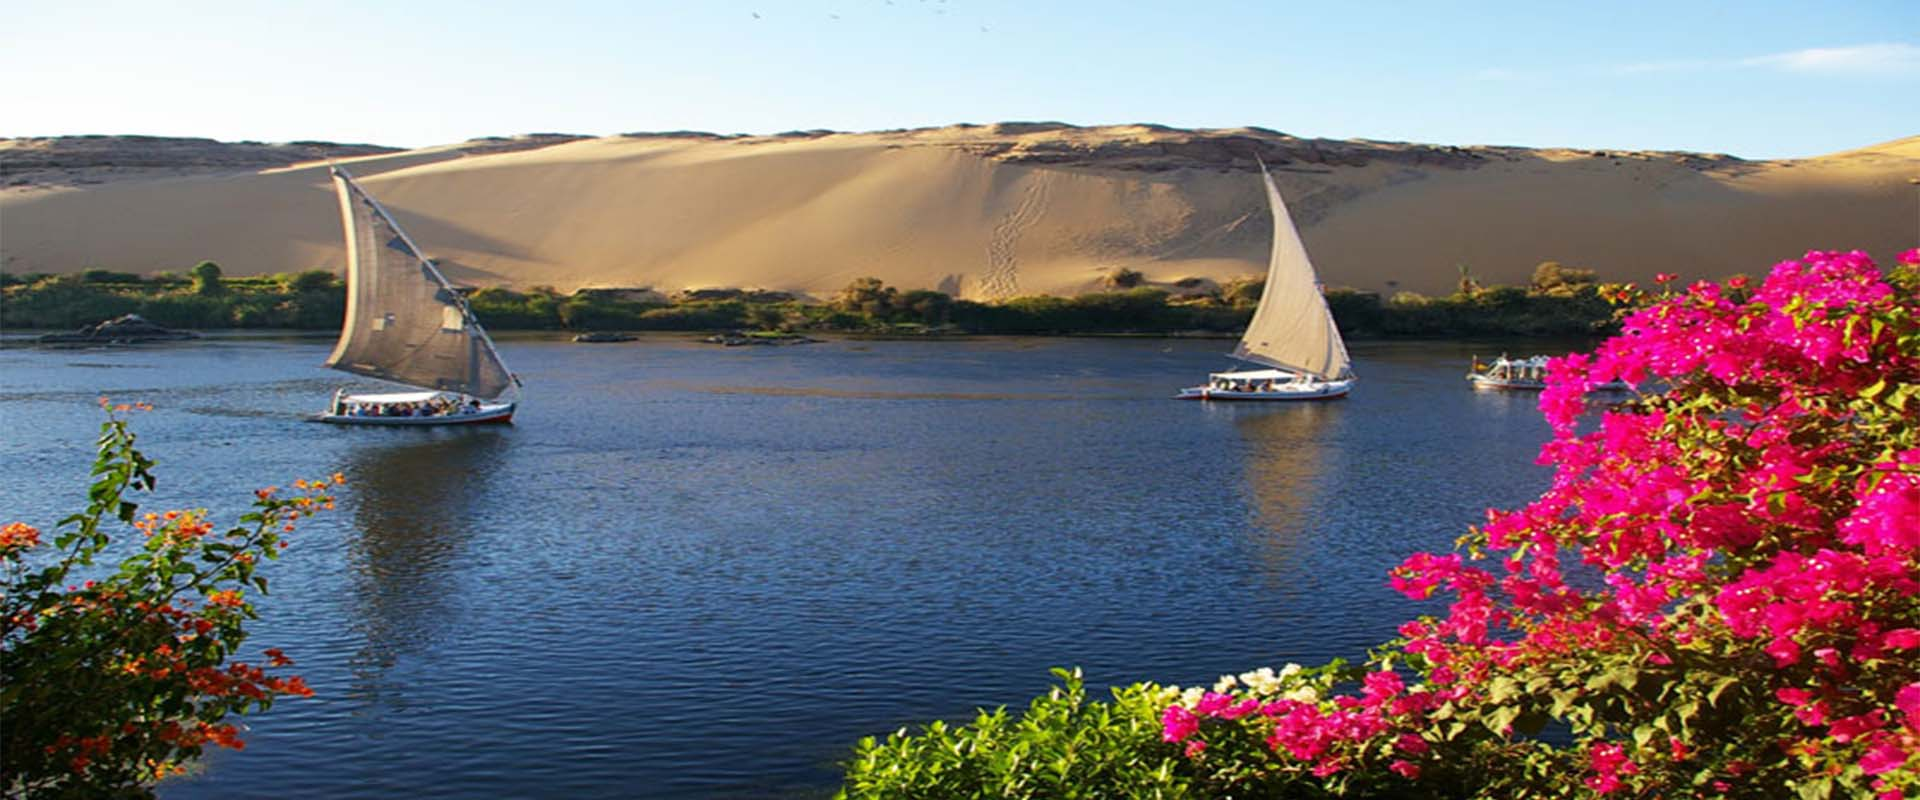 Discover Egypt 12 Day Round Trip